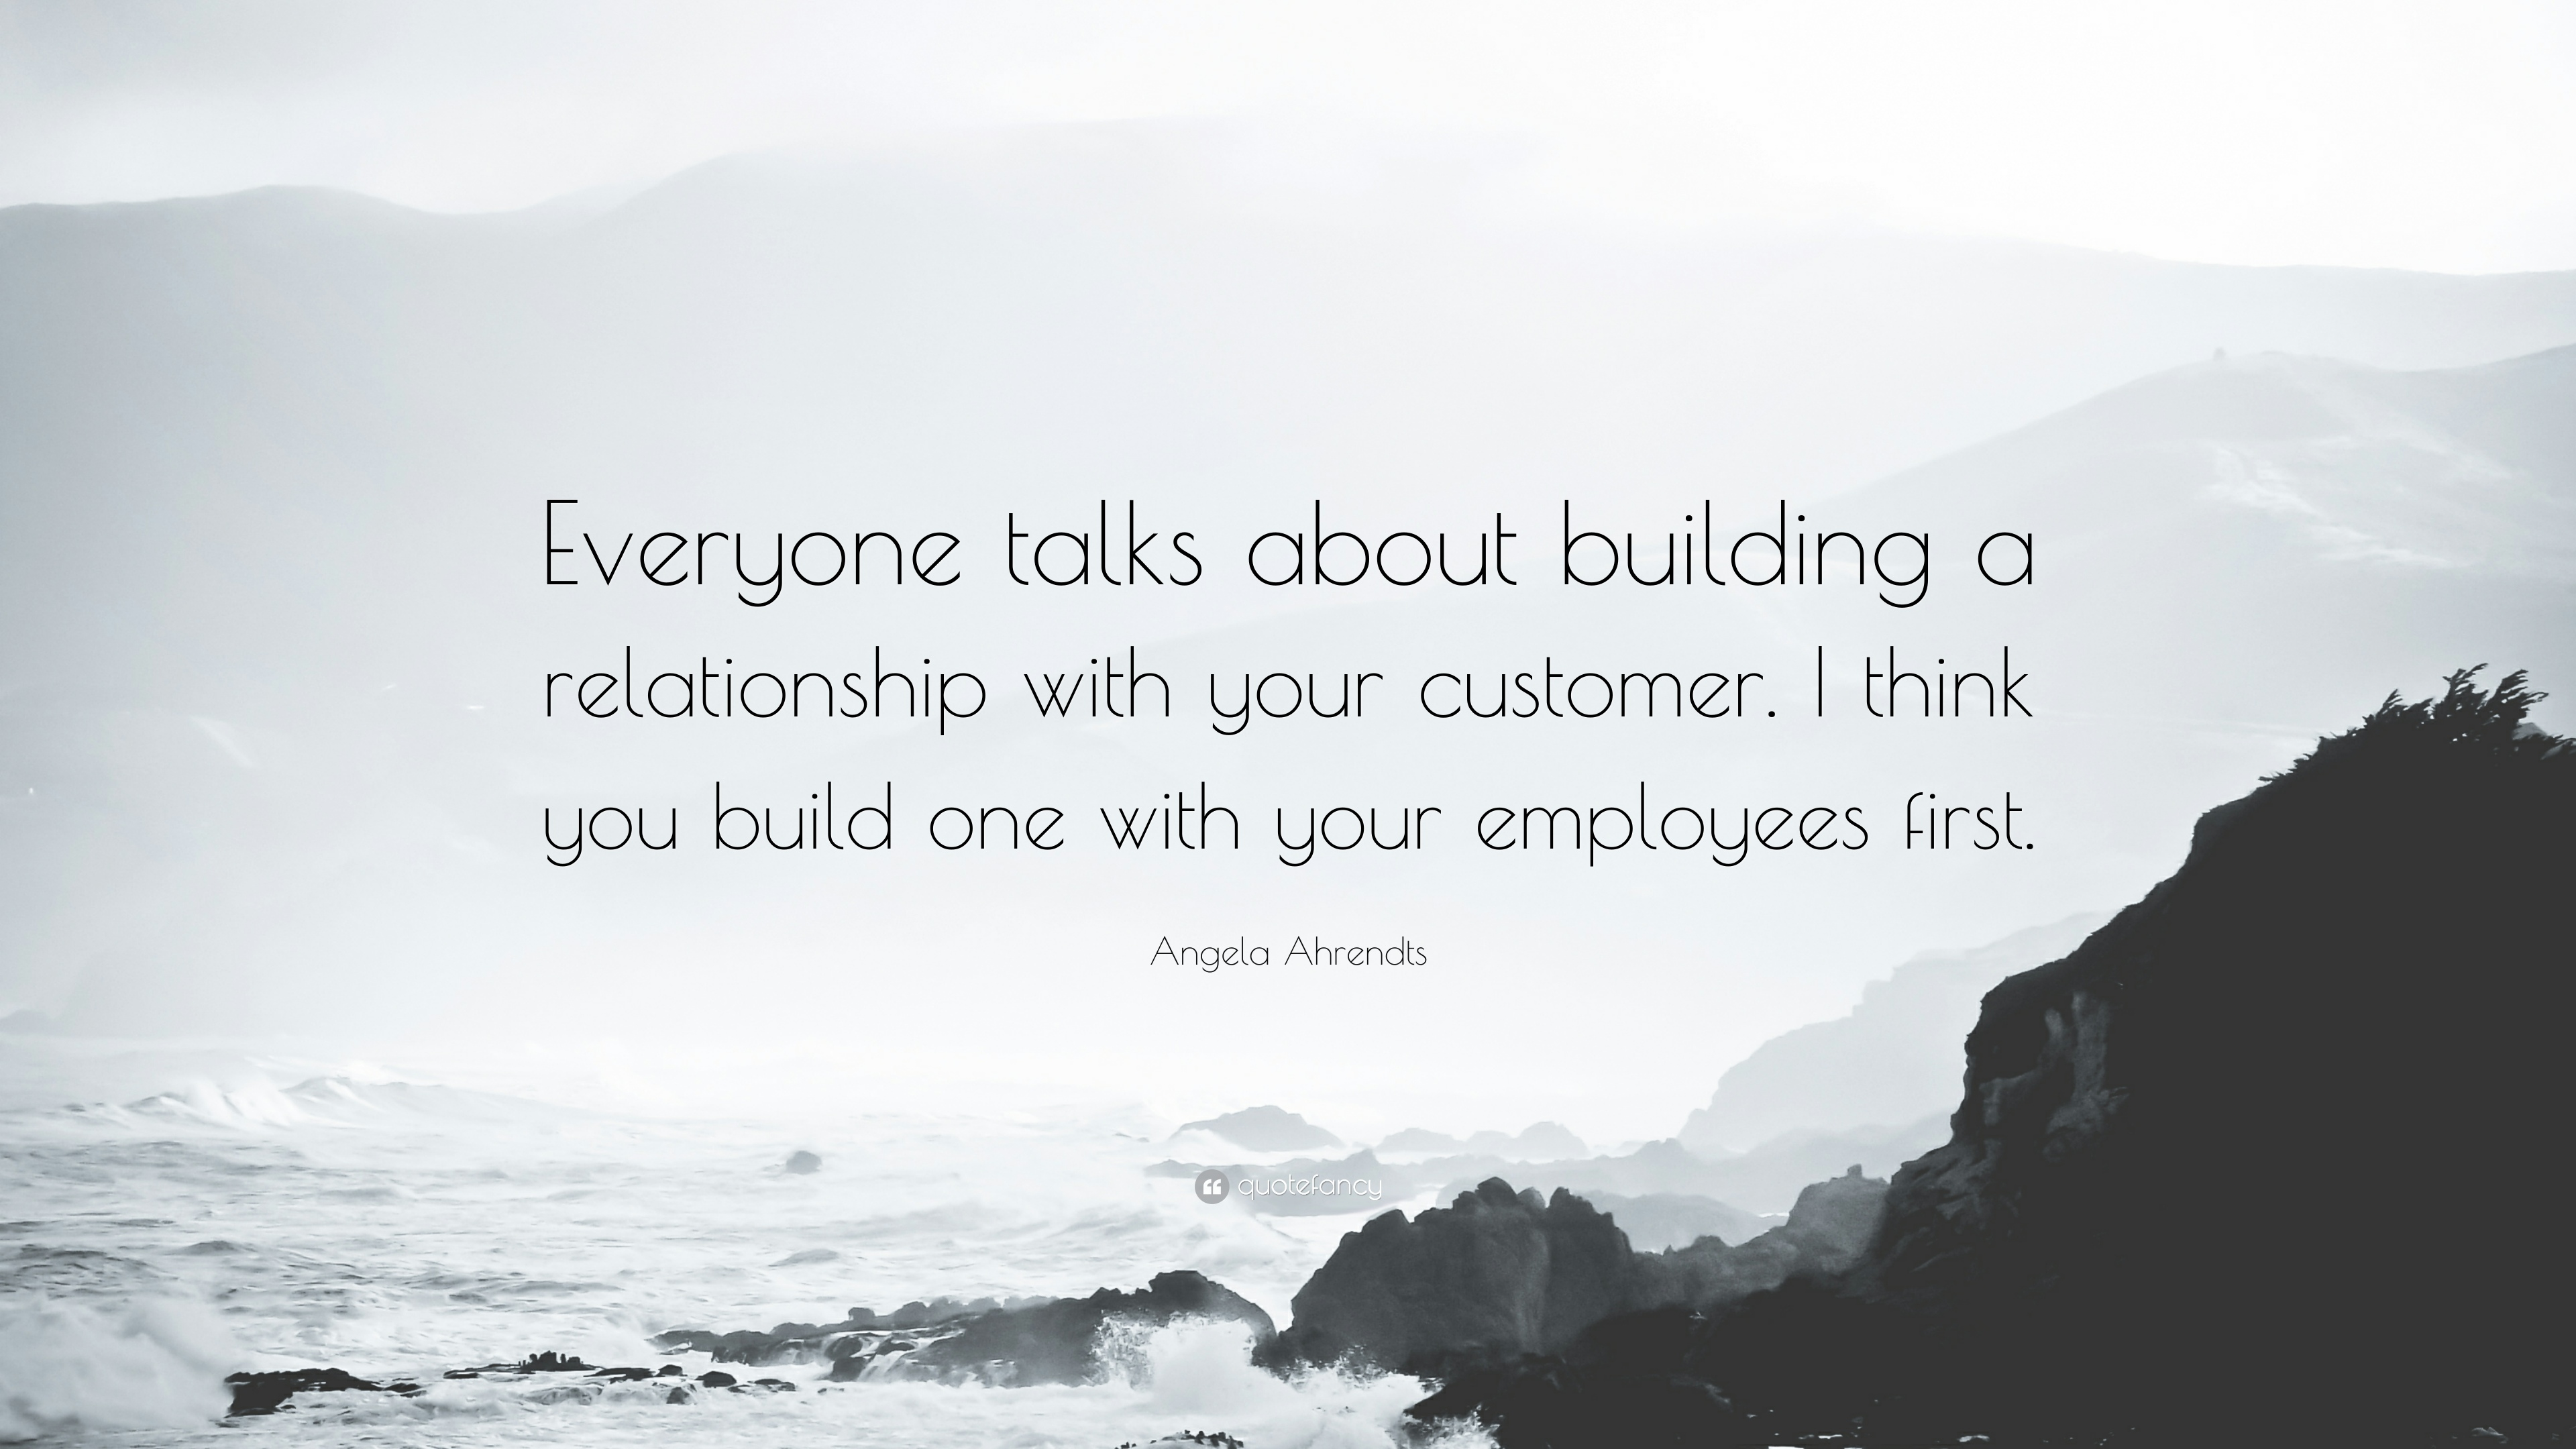 Angela Ahrendts Quote Everyone Talks About Building A Relationship With Your Customer I Think You Build One With Your Employees First 7 Wallpapers Quotefancy